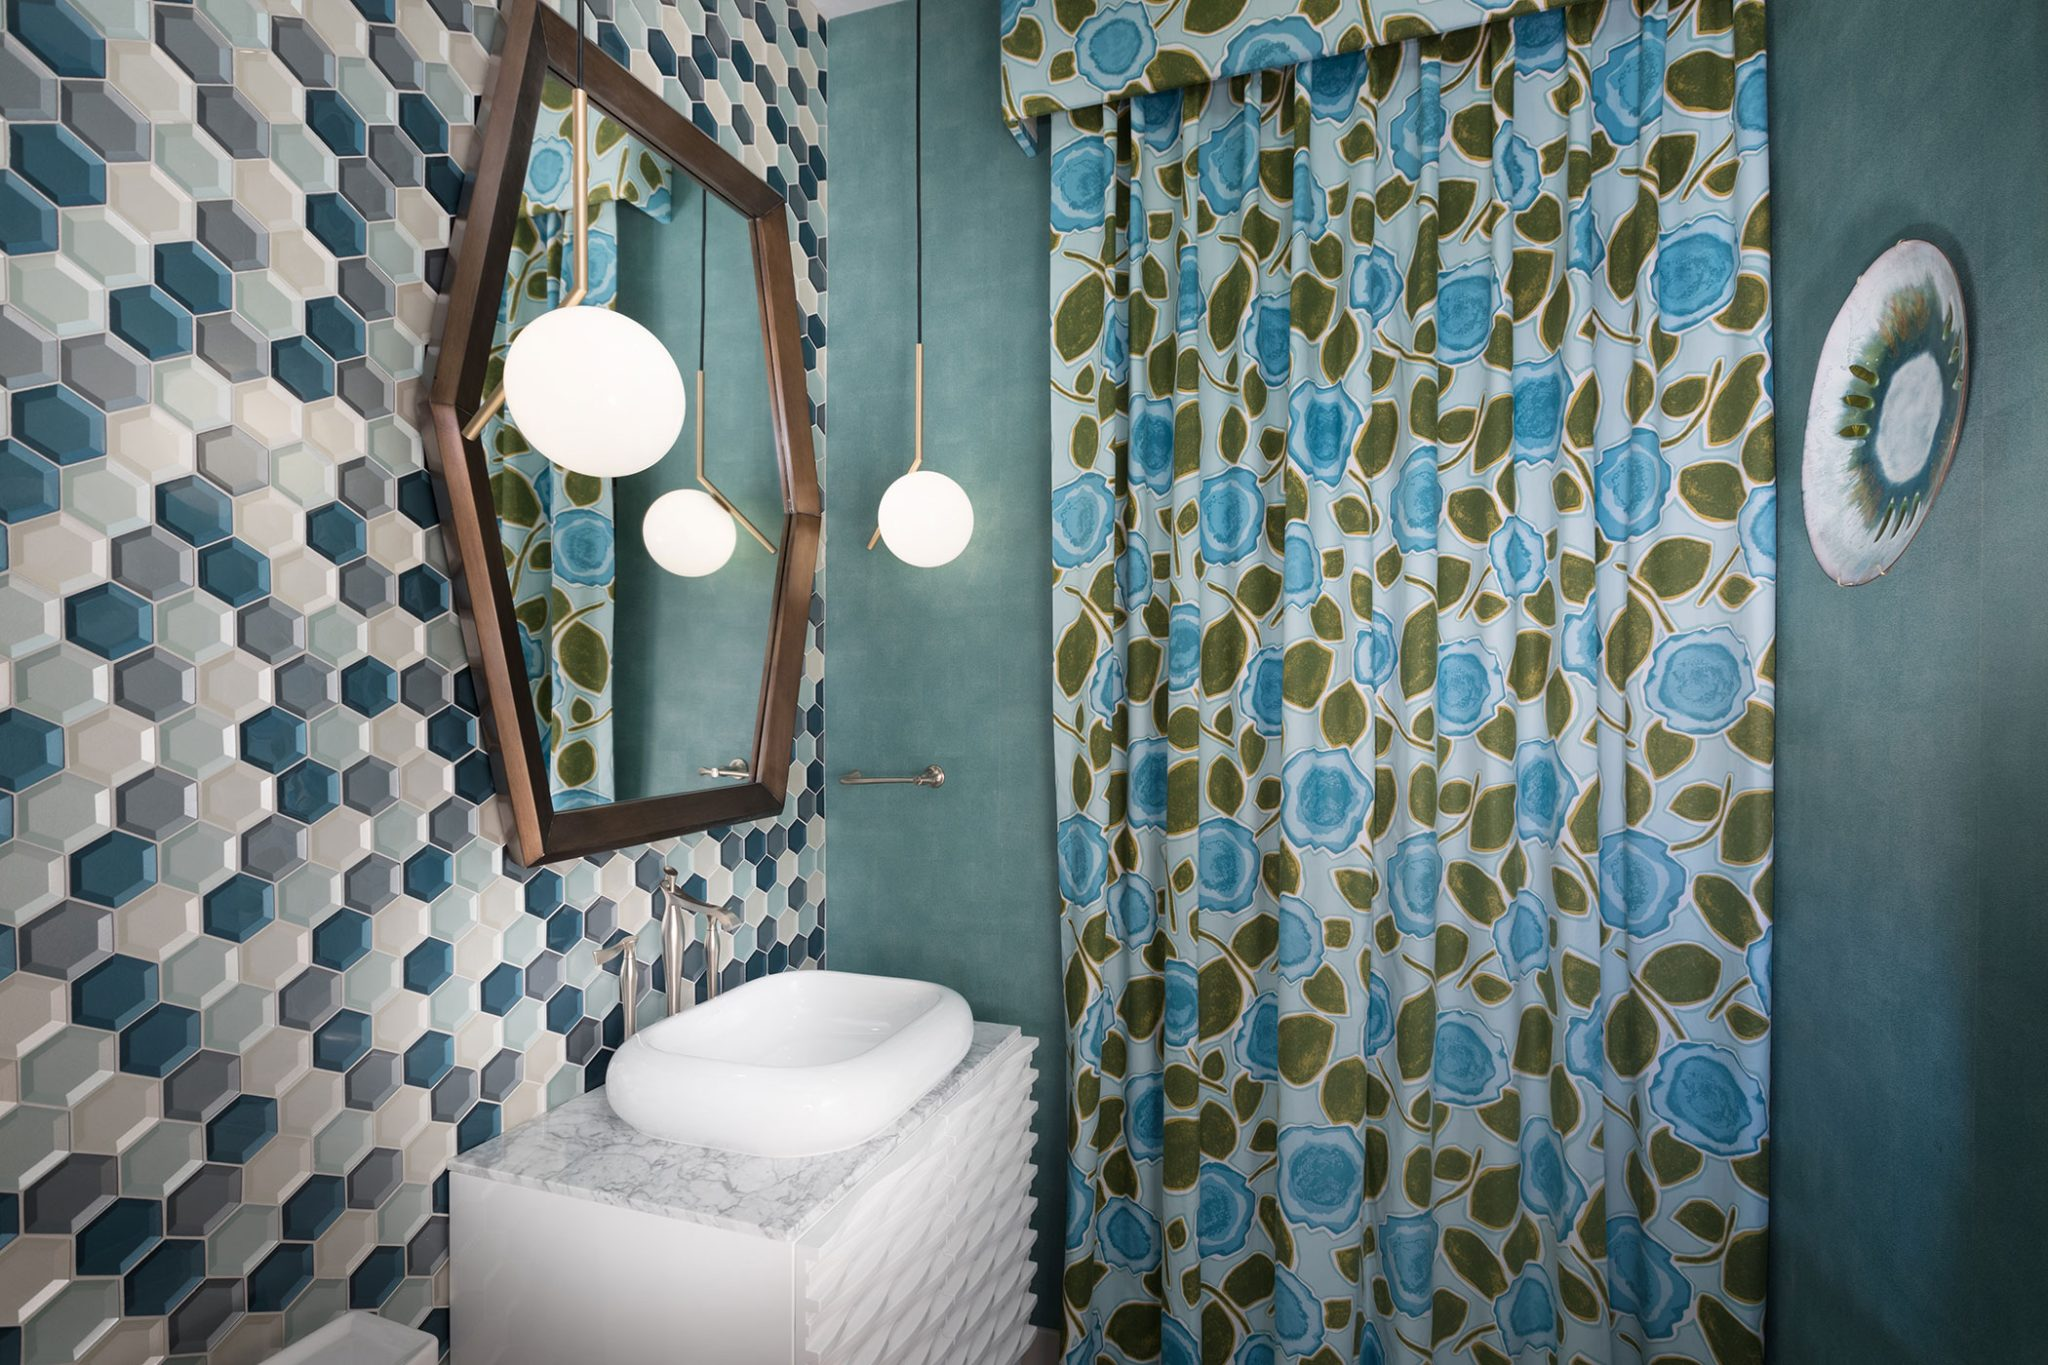 Palm Springs Pastime, powder bath aqua mosaic and wall covering by Aspen Leaf Interiors, Inc.